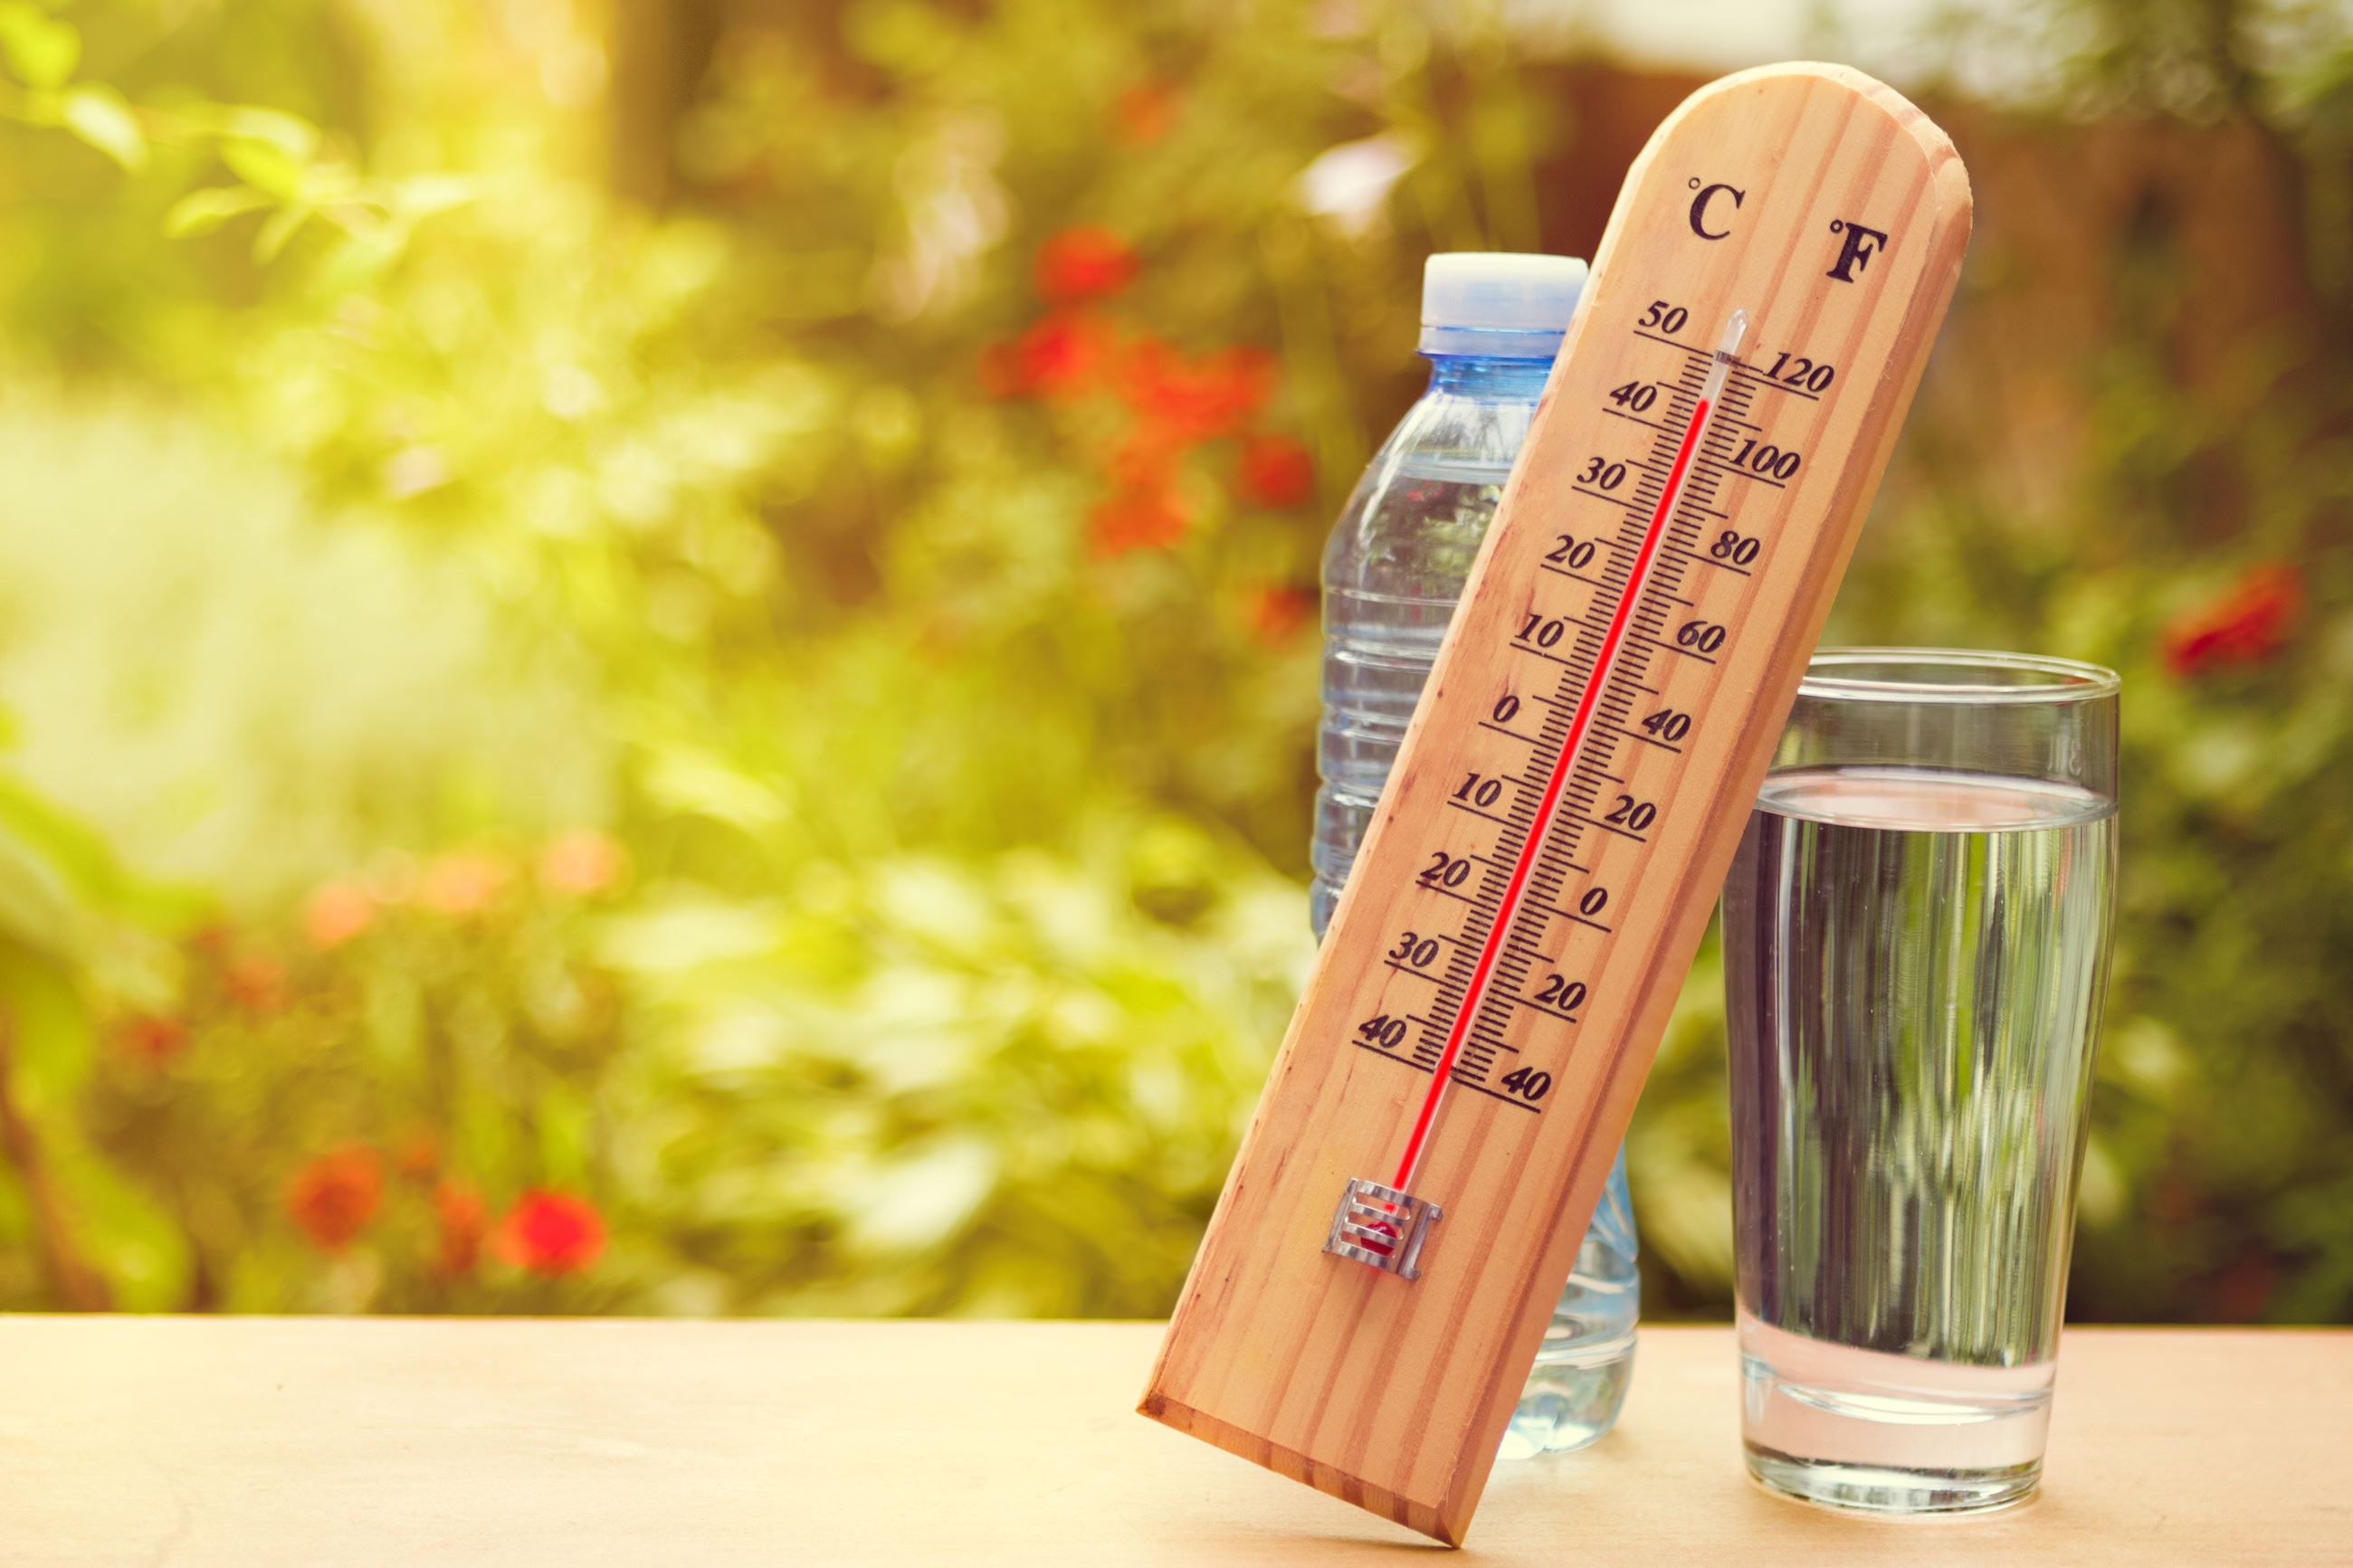 Thermometer showing over 100 degrees with drinking water